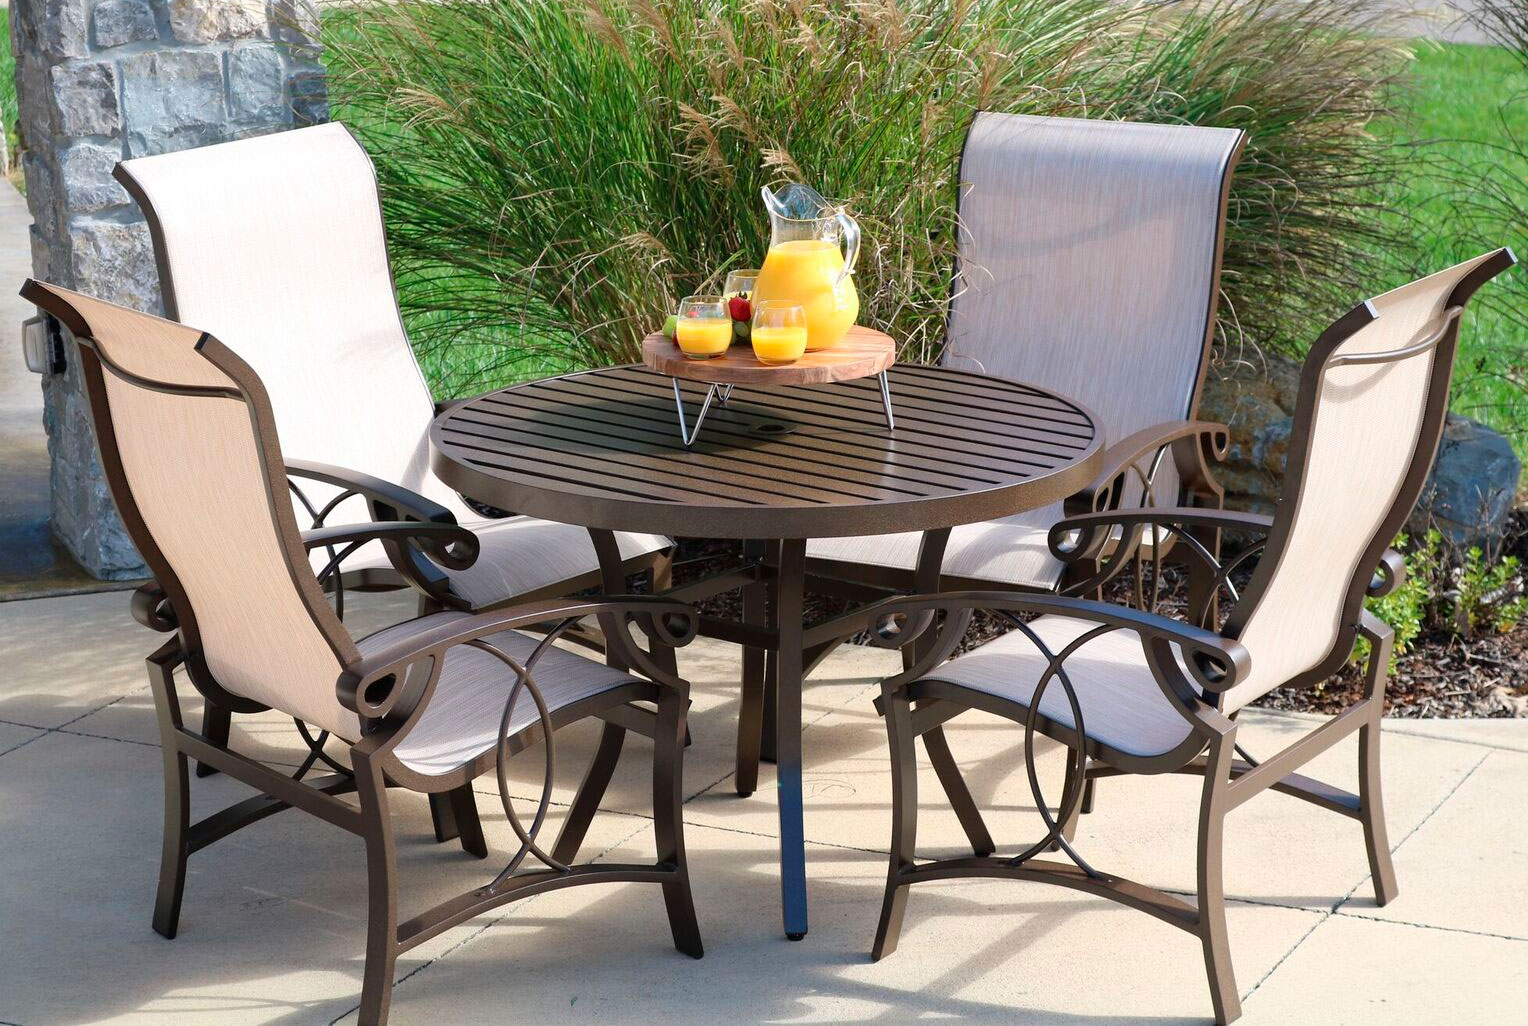 CONTRACT OUTDOOR FURNITURE CINNAMON BAY SLING POOL